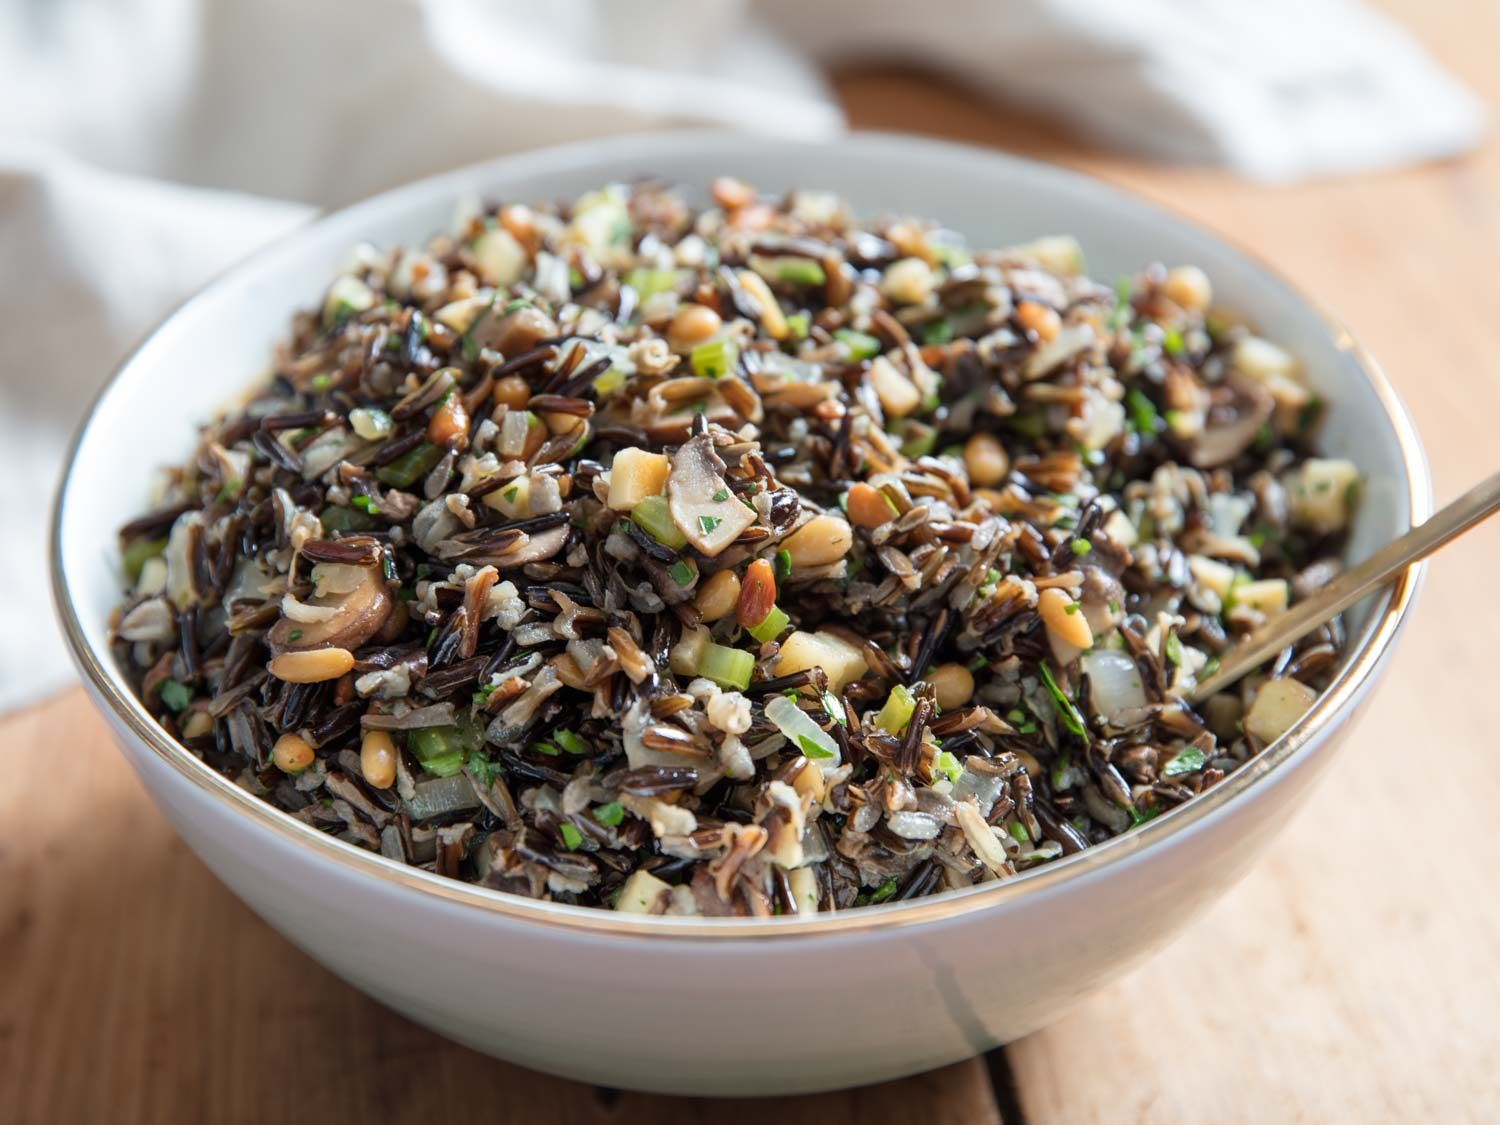 Wild Rice Salad With Mushrooms, Celery Root, and Pine Nuts